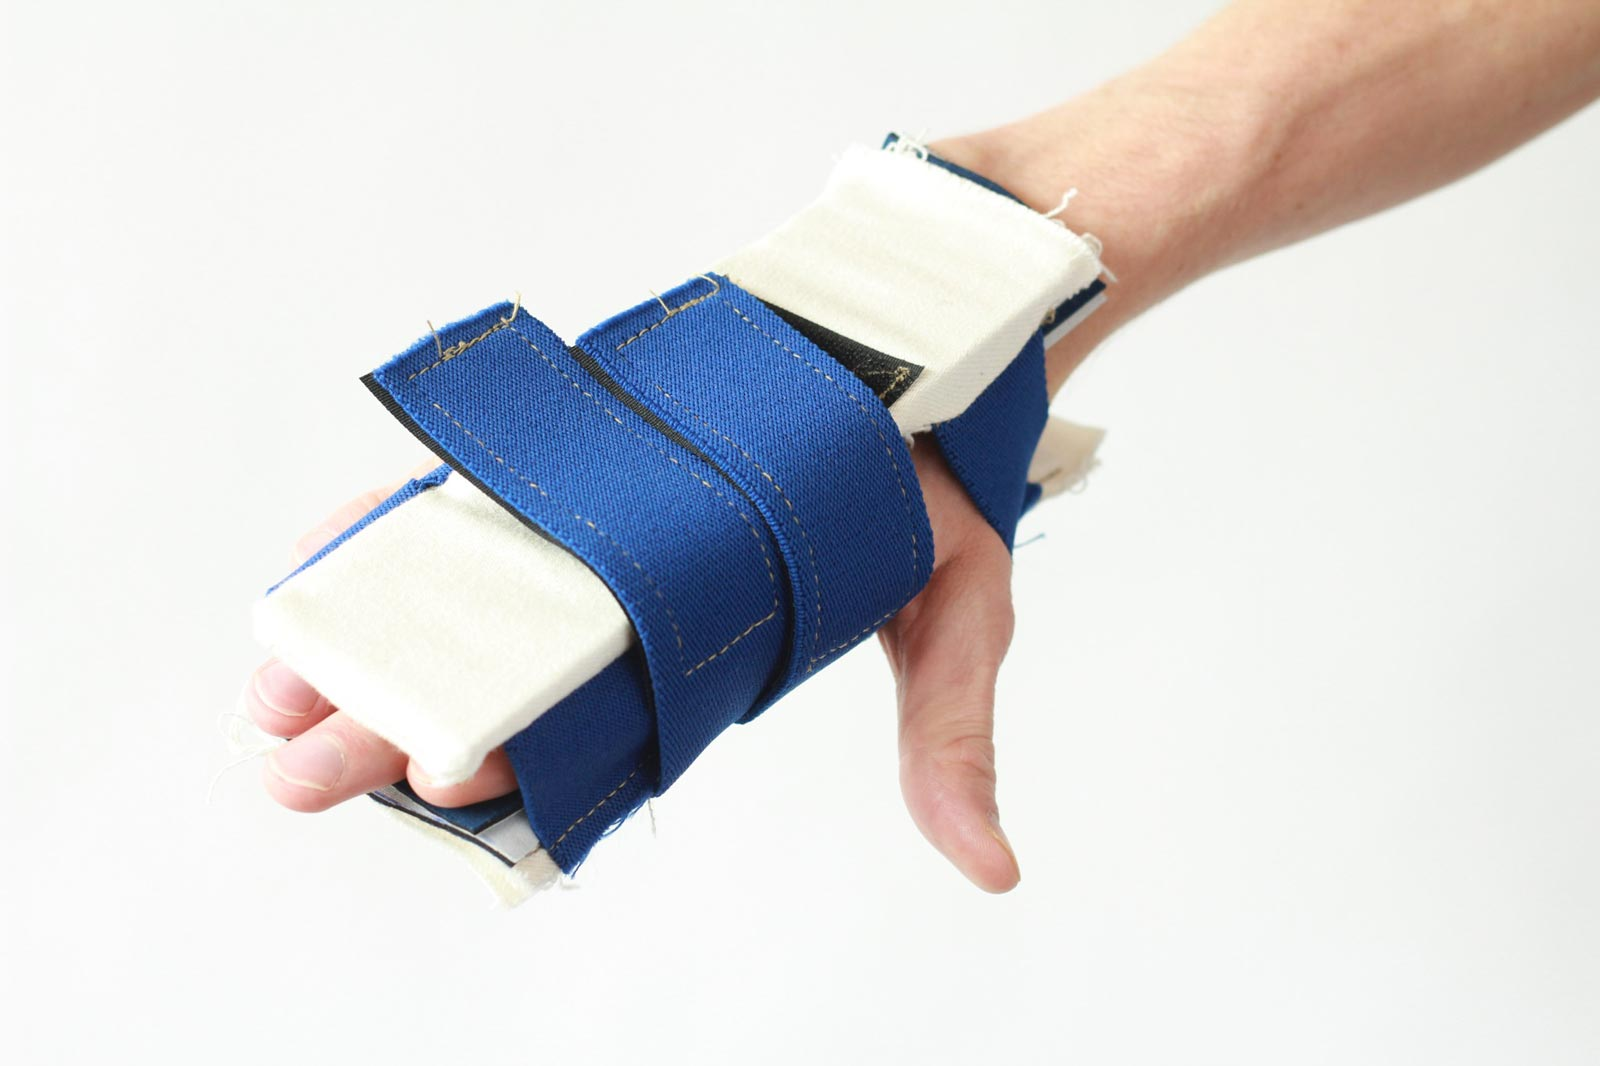 Splint to stretch my right hand